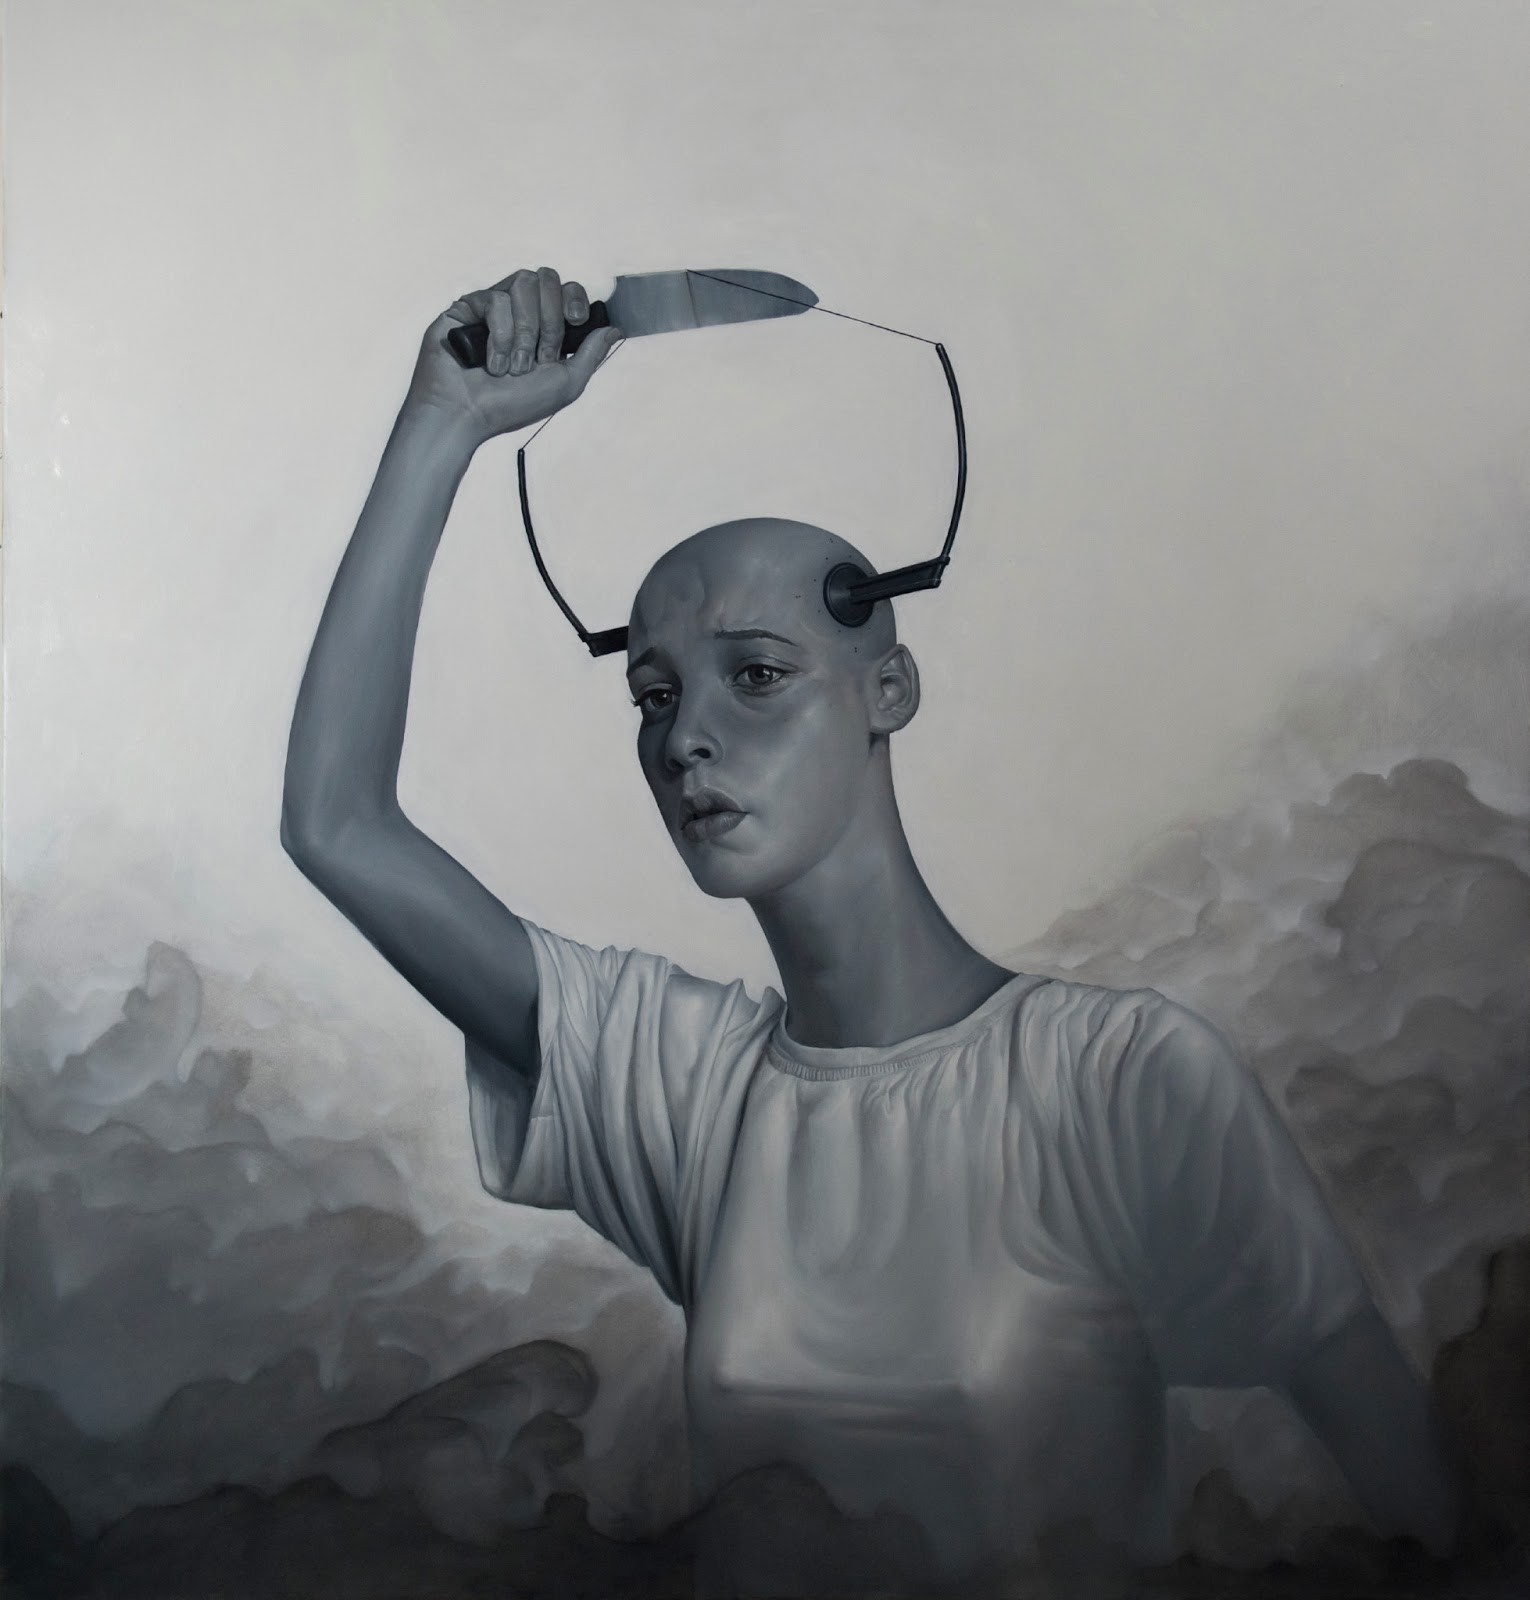 Constantine Lianos - Cutting the equilibrium, 190 x 180 cm, oil on canvas